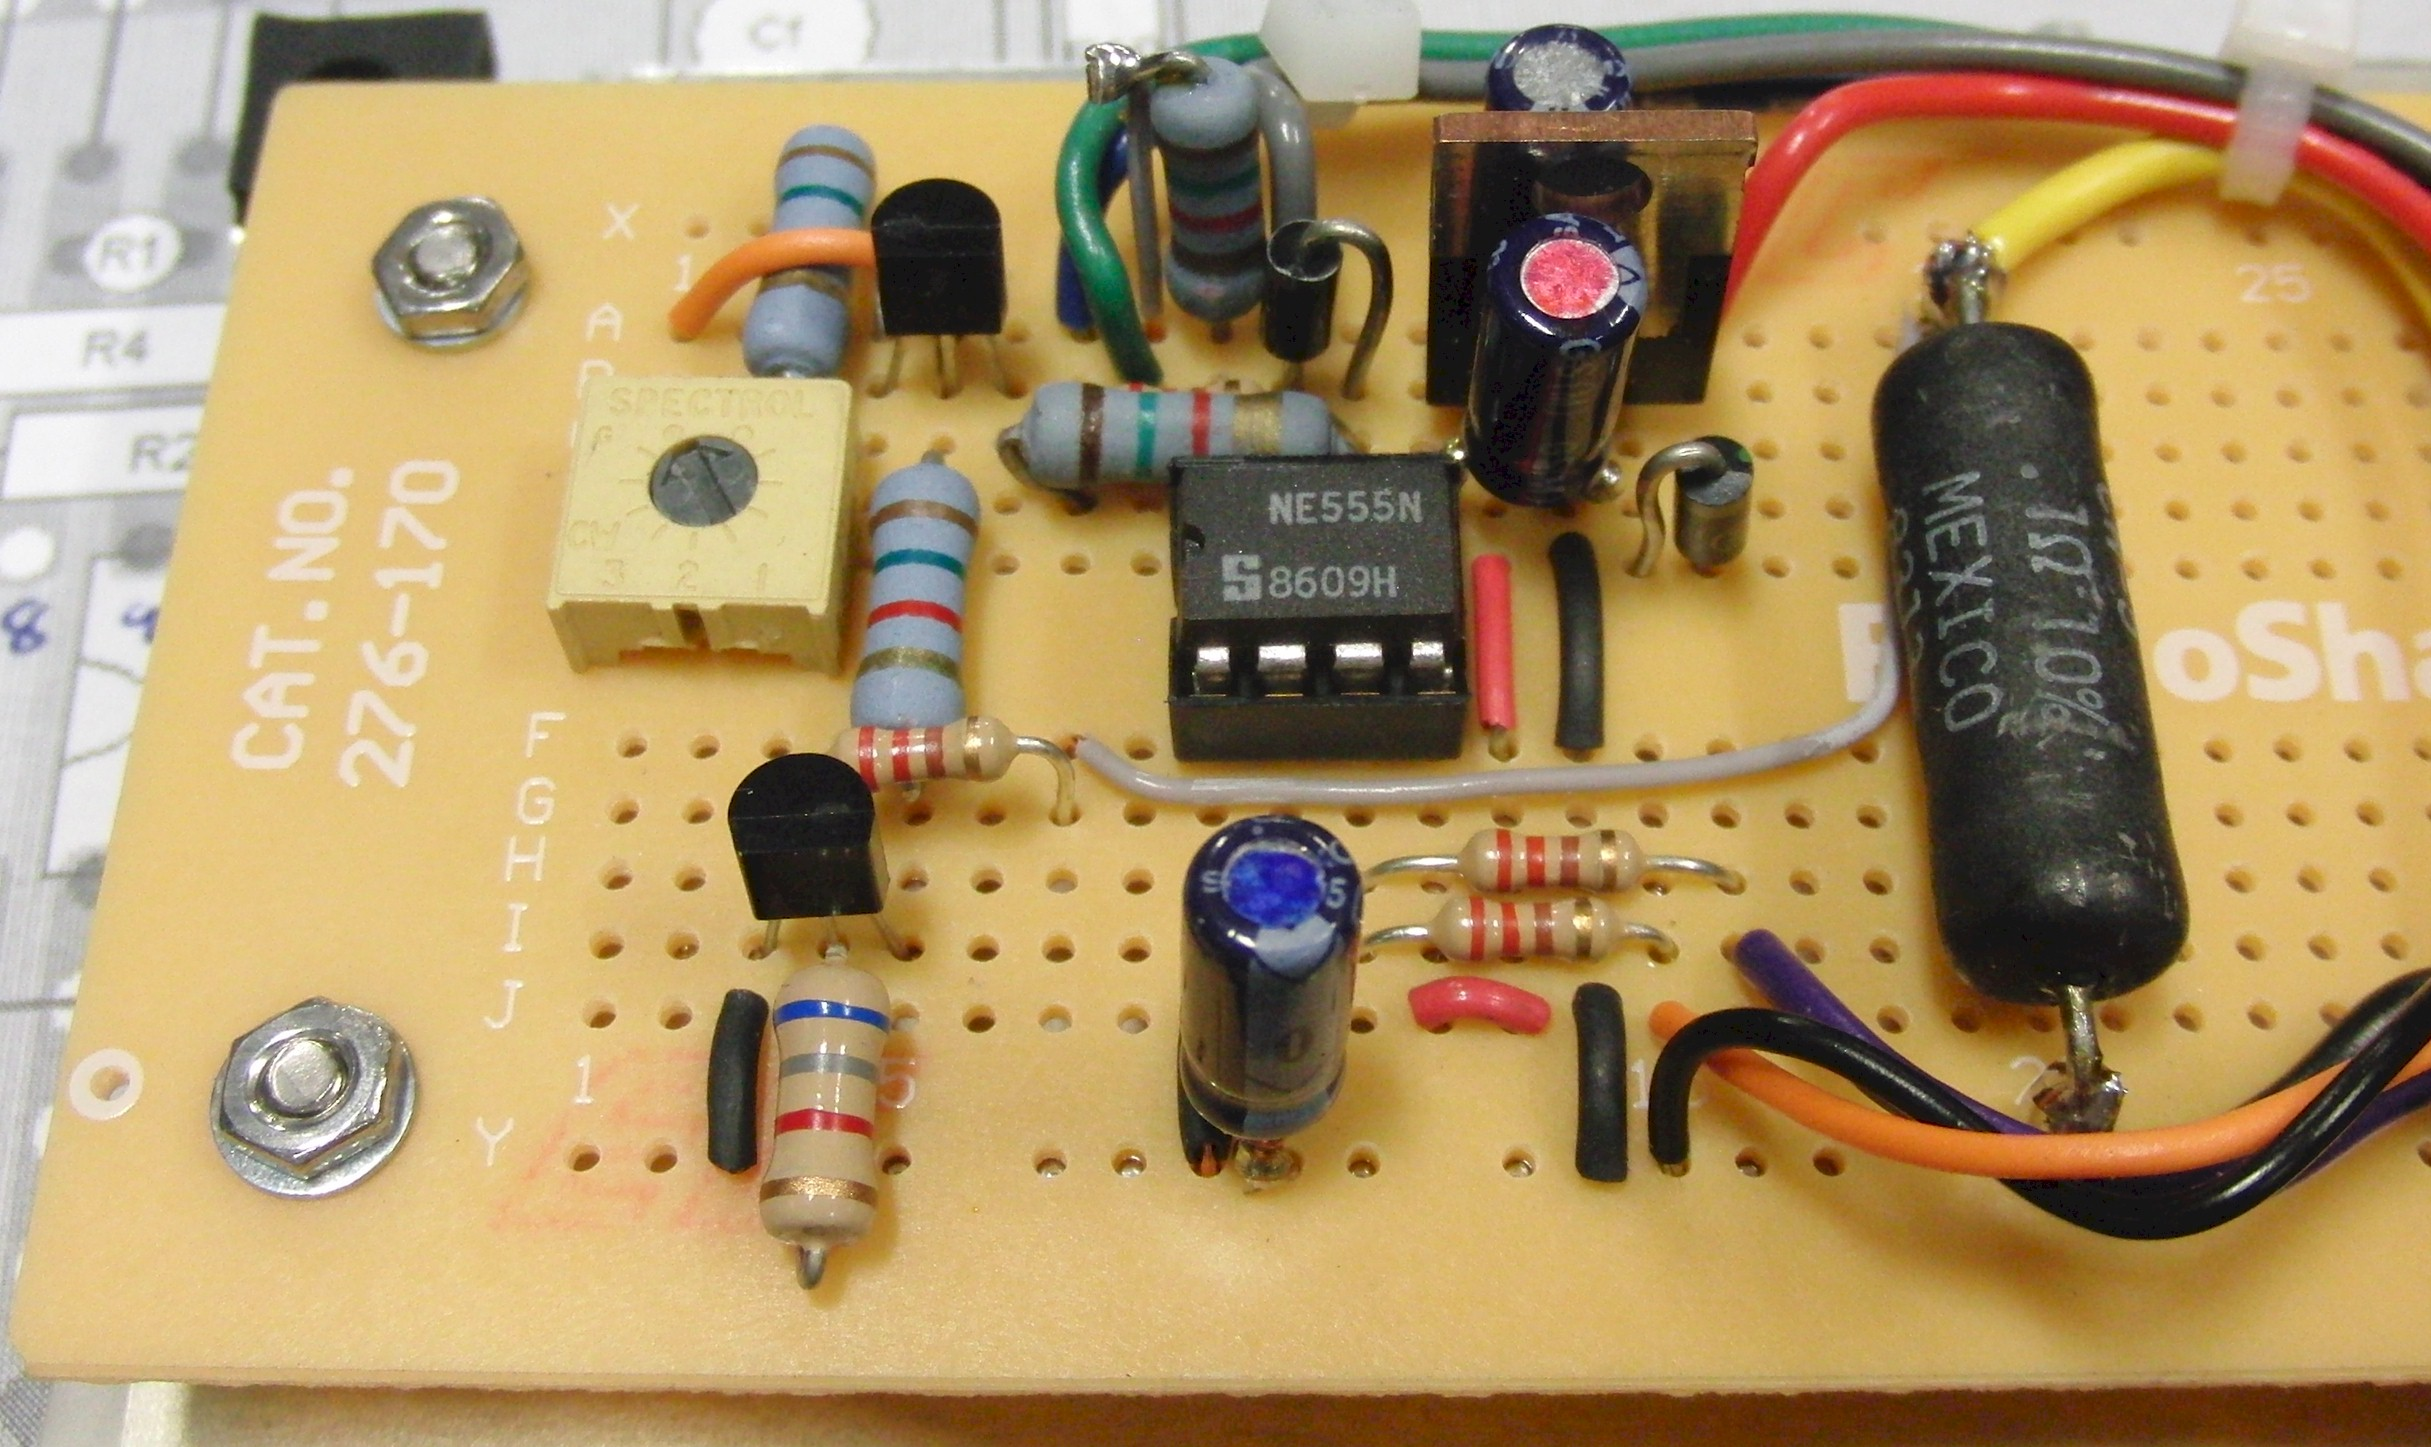 Coil Tester Testing Circuit Board This Will Work On Most Ignition Coils Used Internal Combustion Engines However There Are Quite A Few Different Wiring Configurations